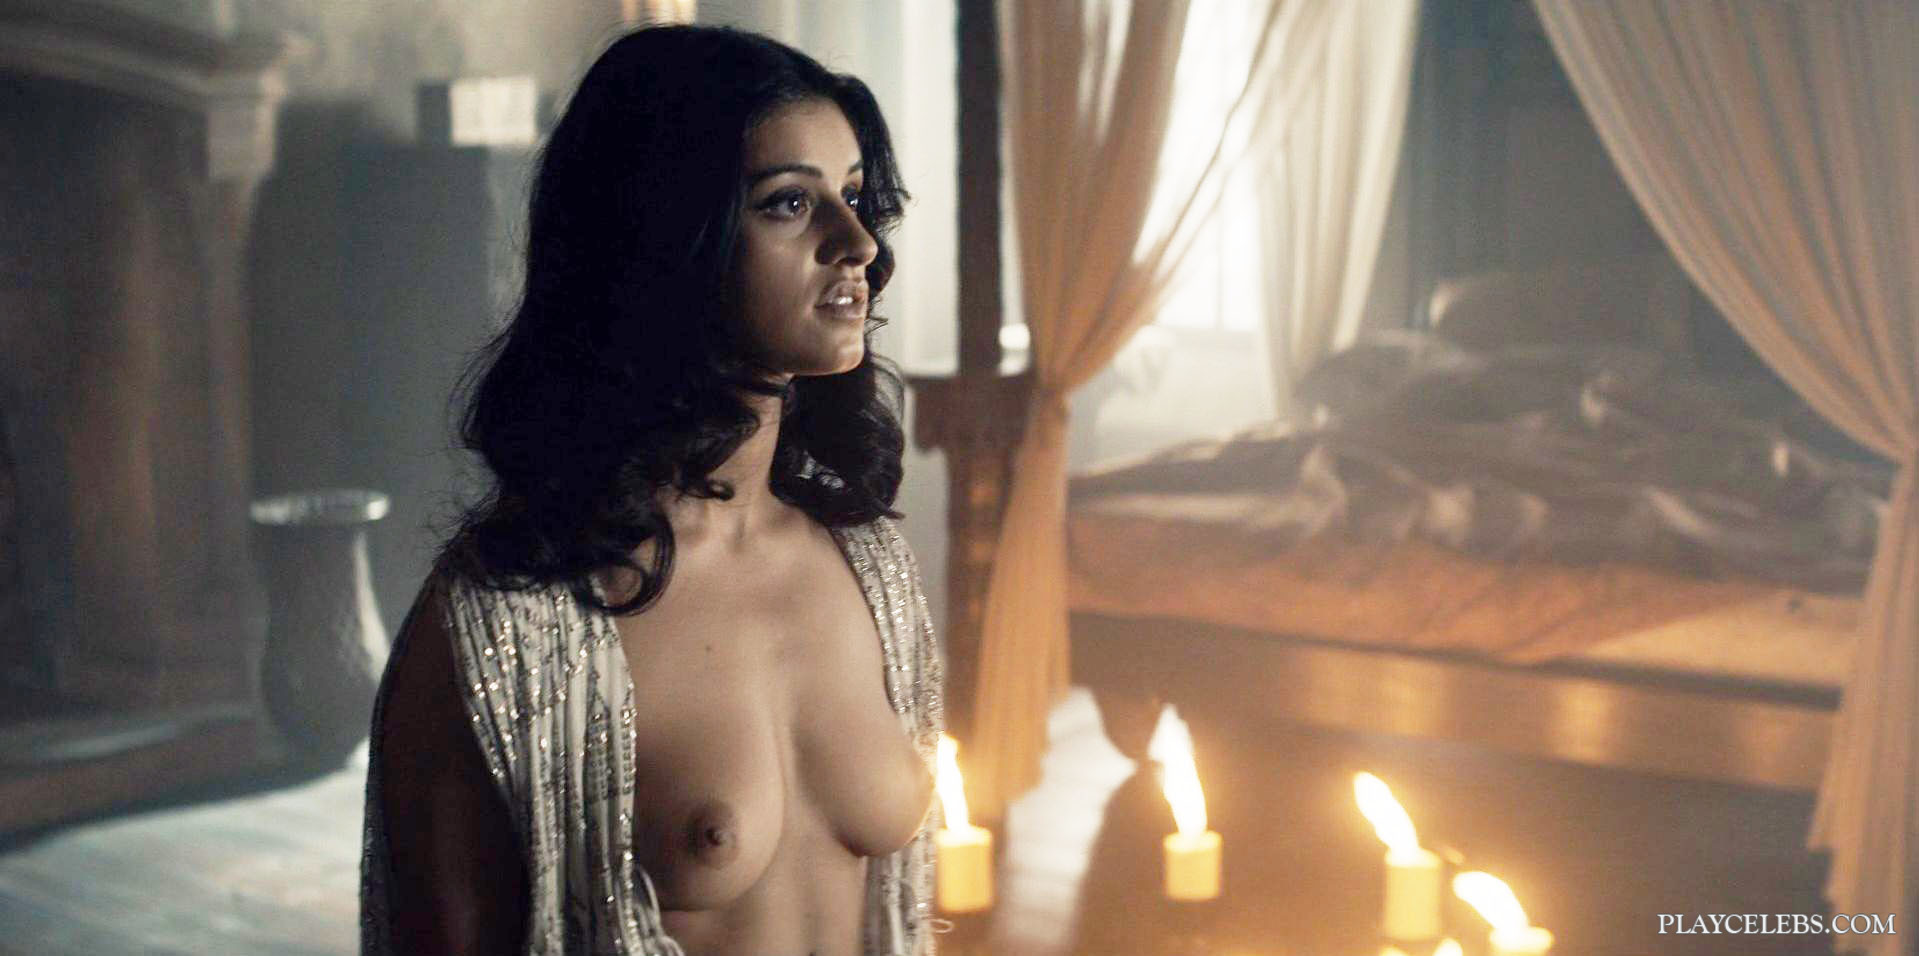 You are currently viewing Anya Chalotra Nude Sex Scenes In The Witcher S01E05